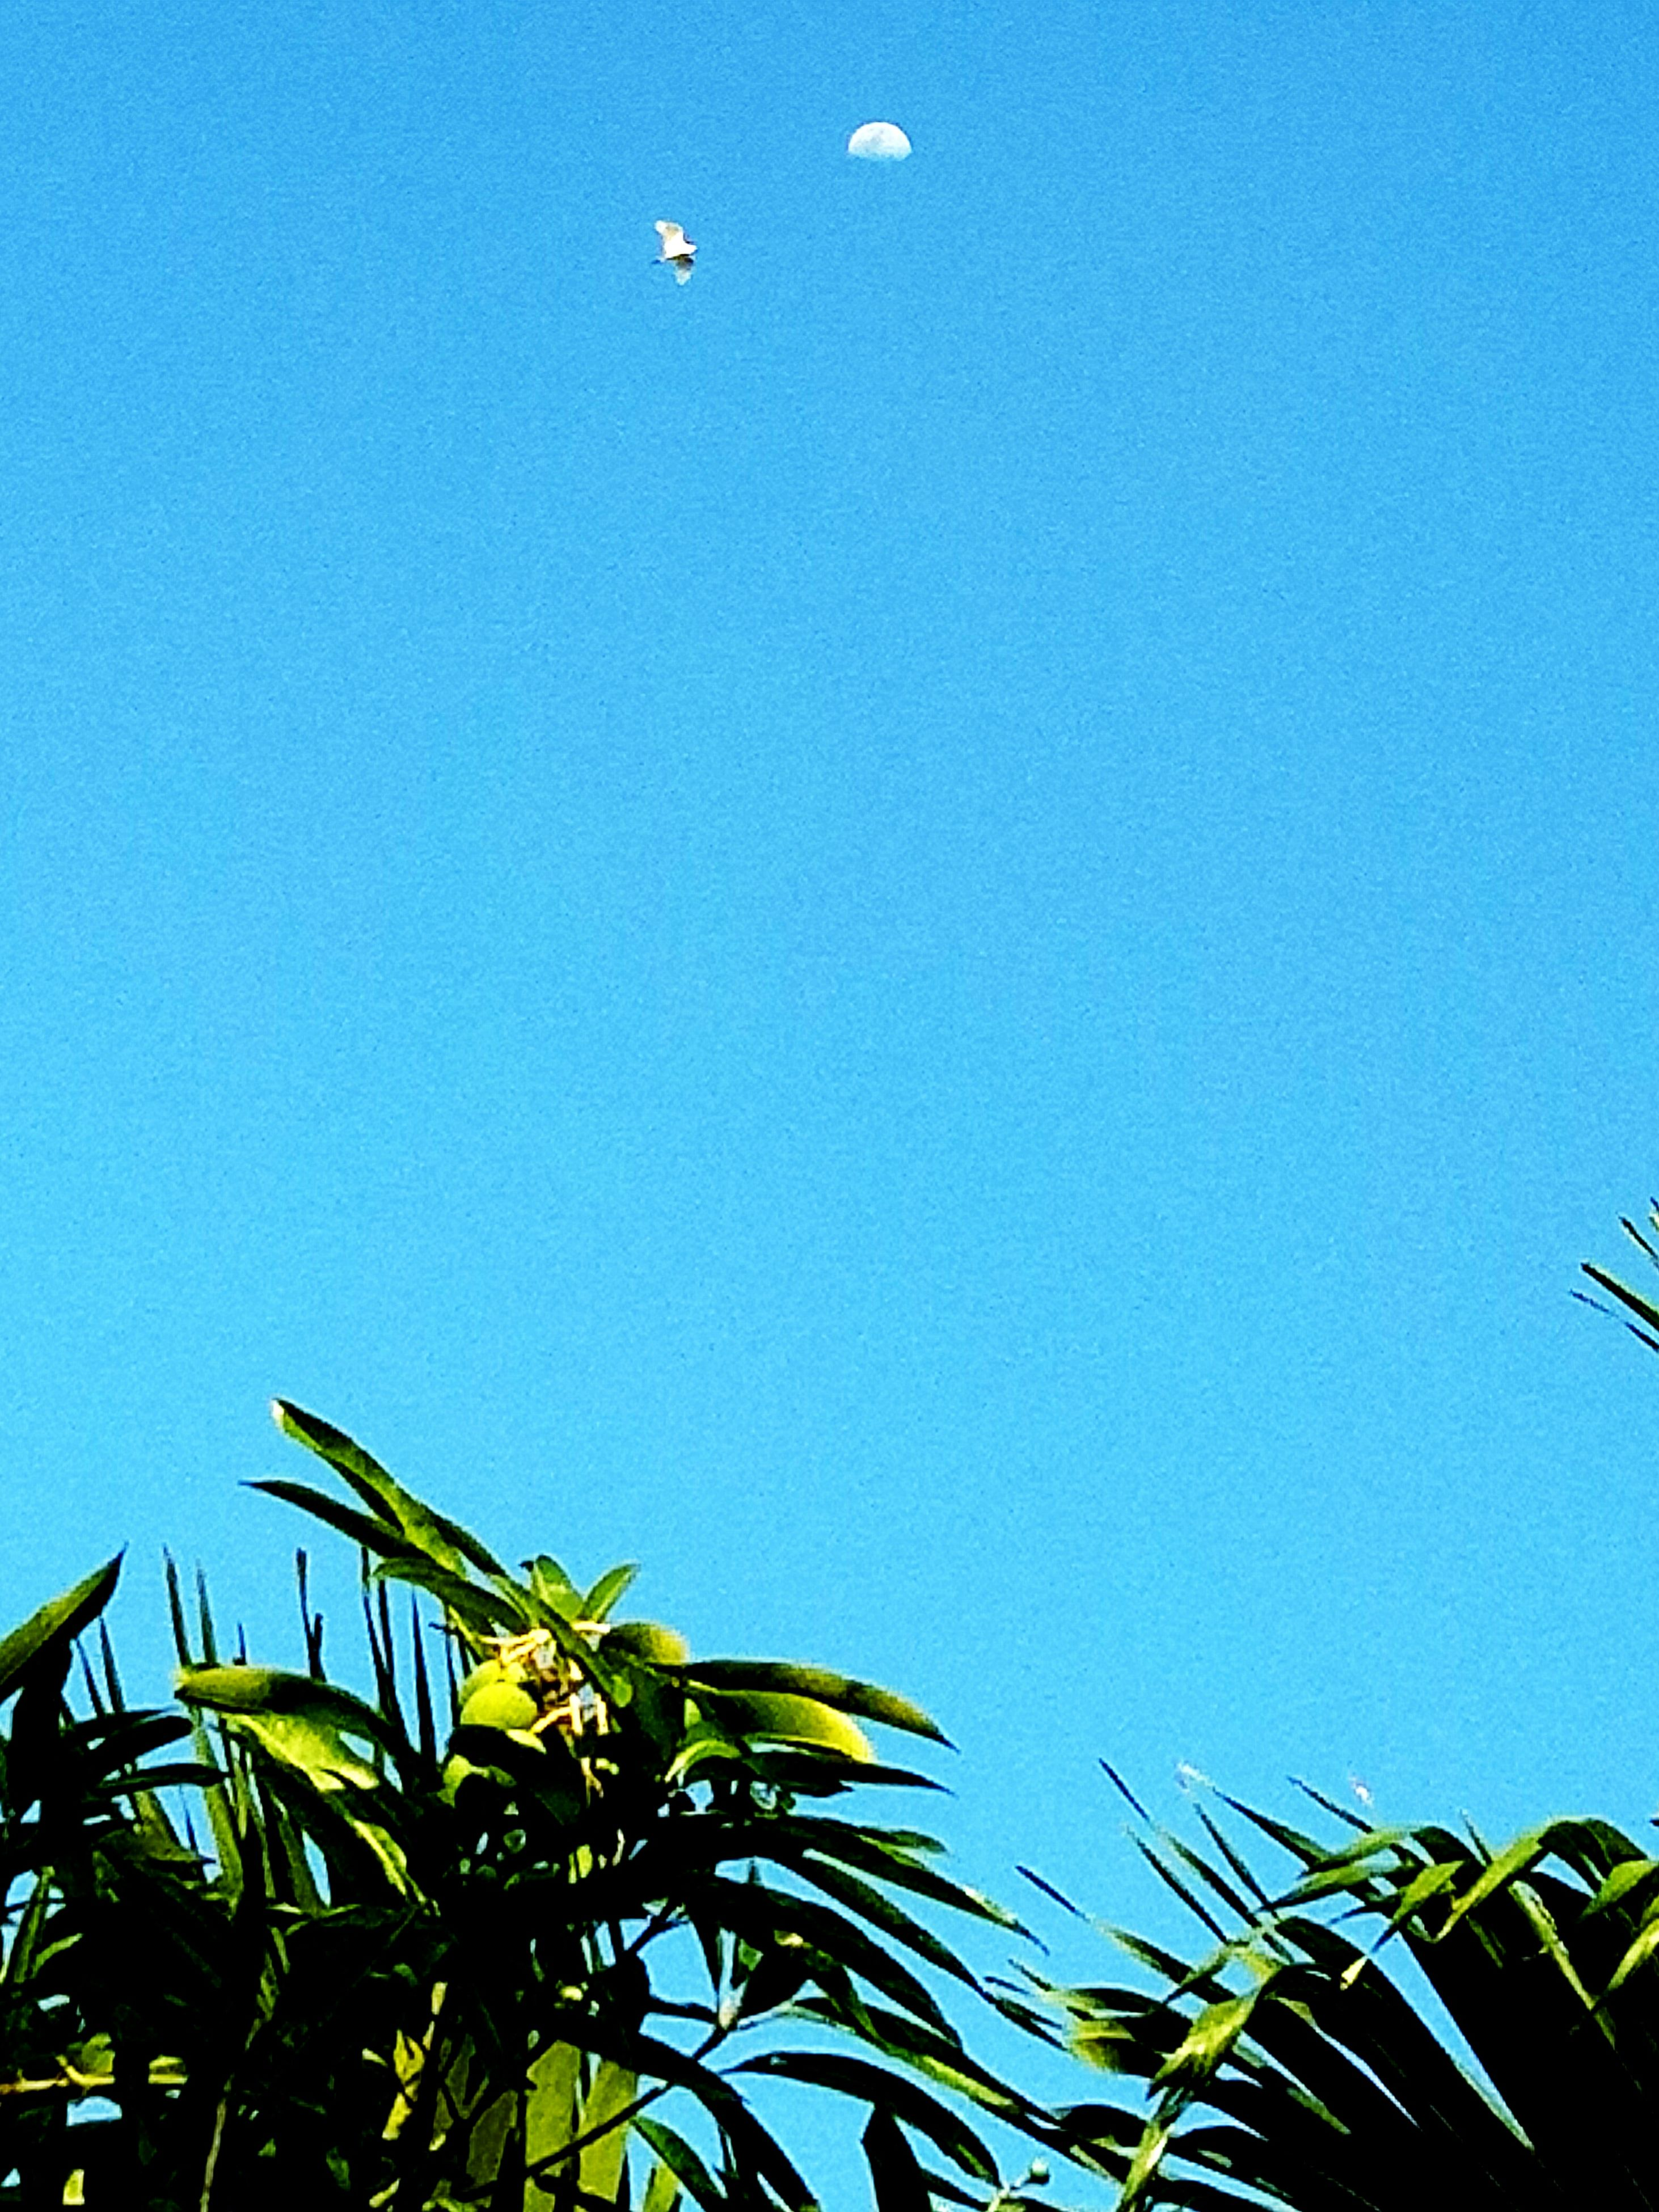 blue, clear sky, flying, low angle view, sky, nature, no people, outdoors, palm tree, day, bird, beauty in nature